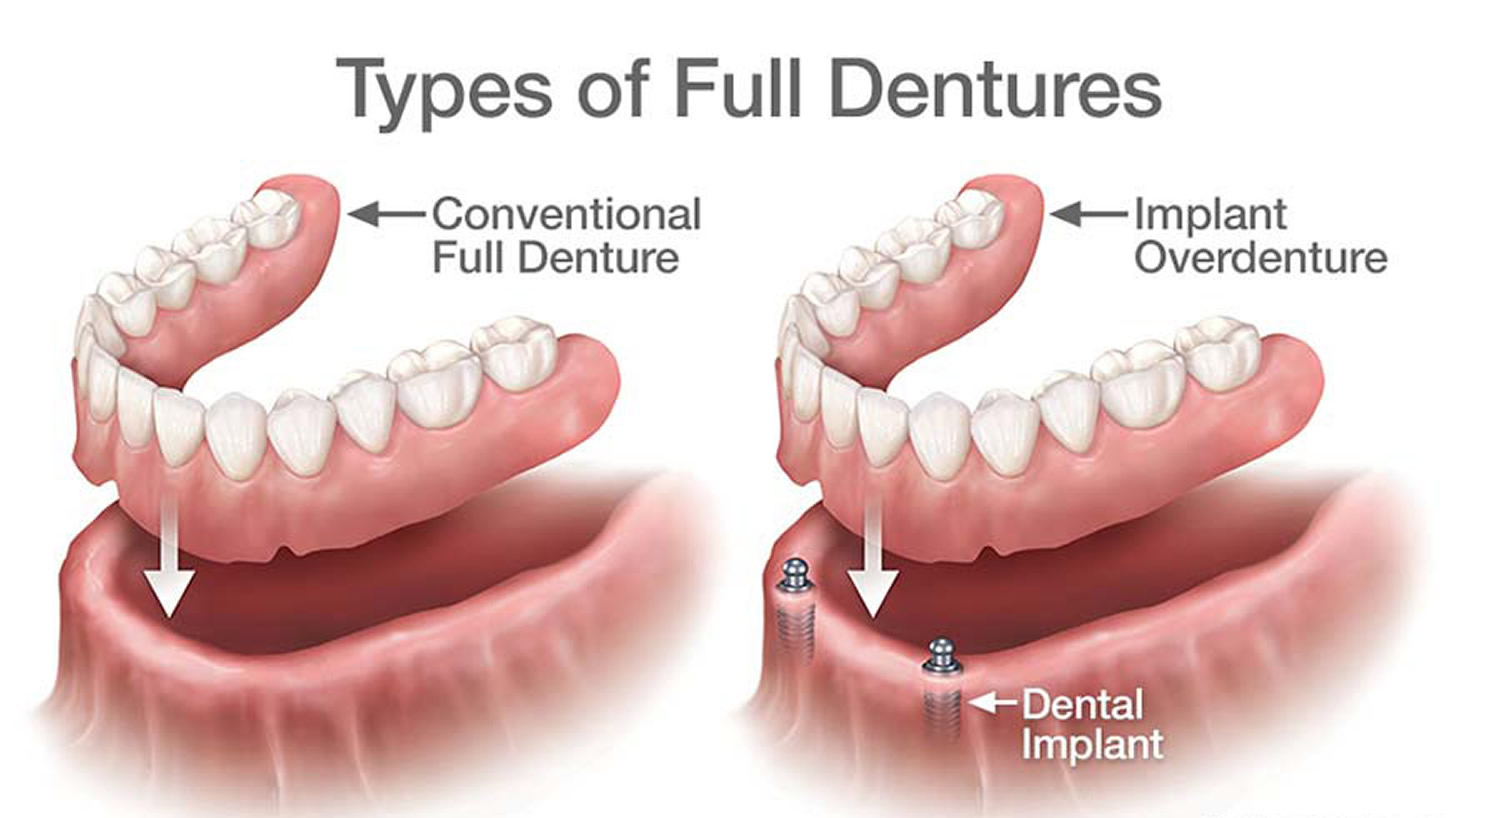 Types of full dentures